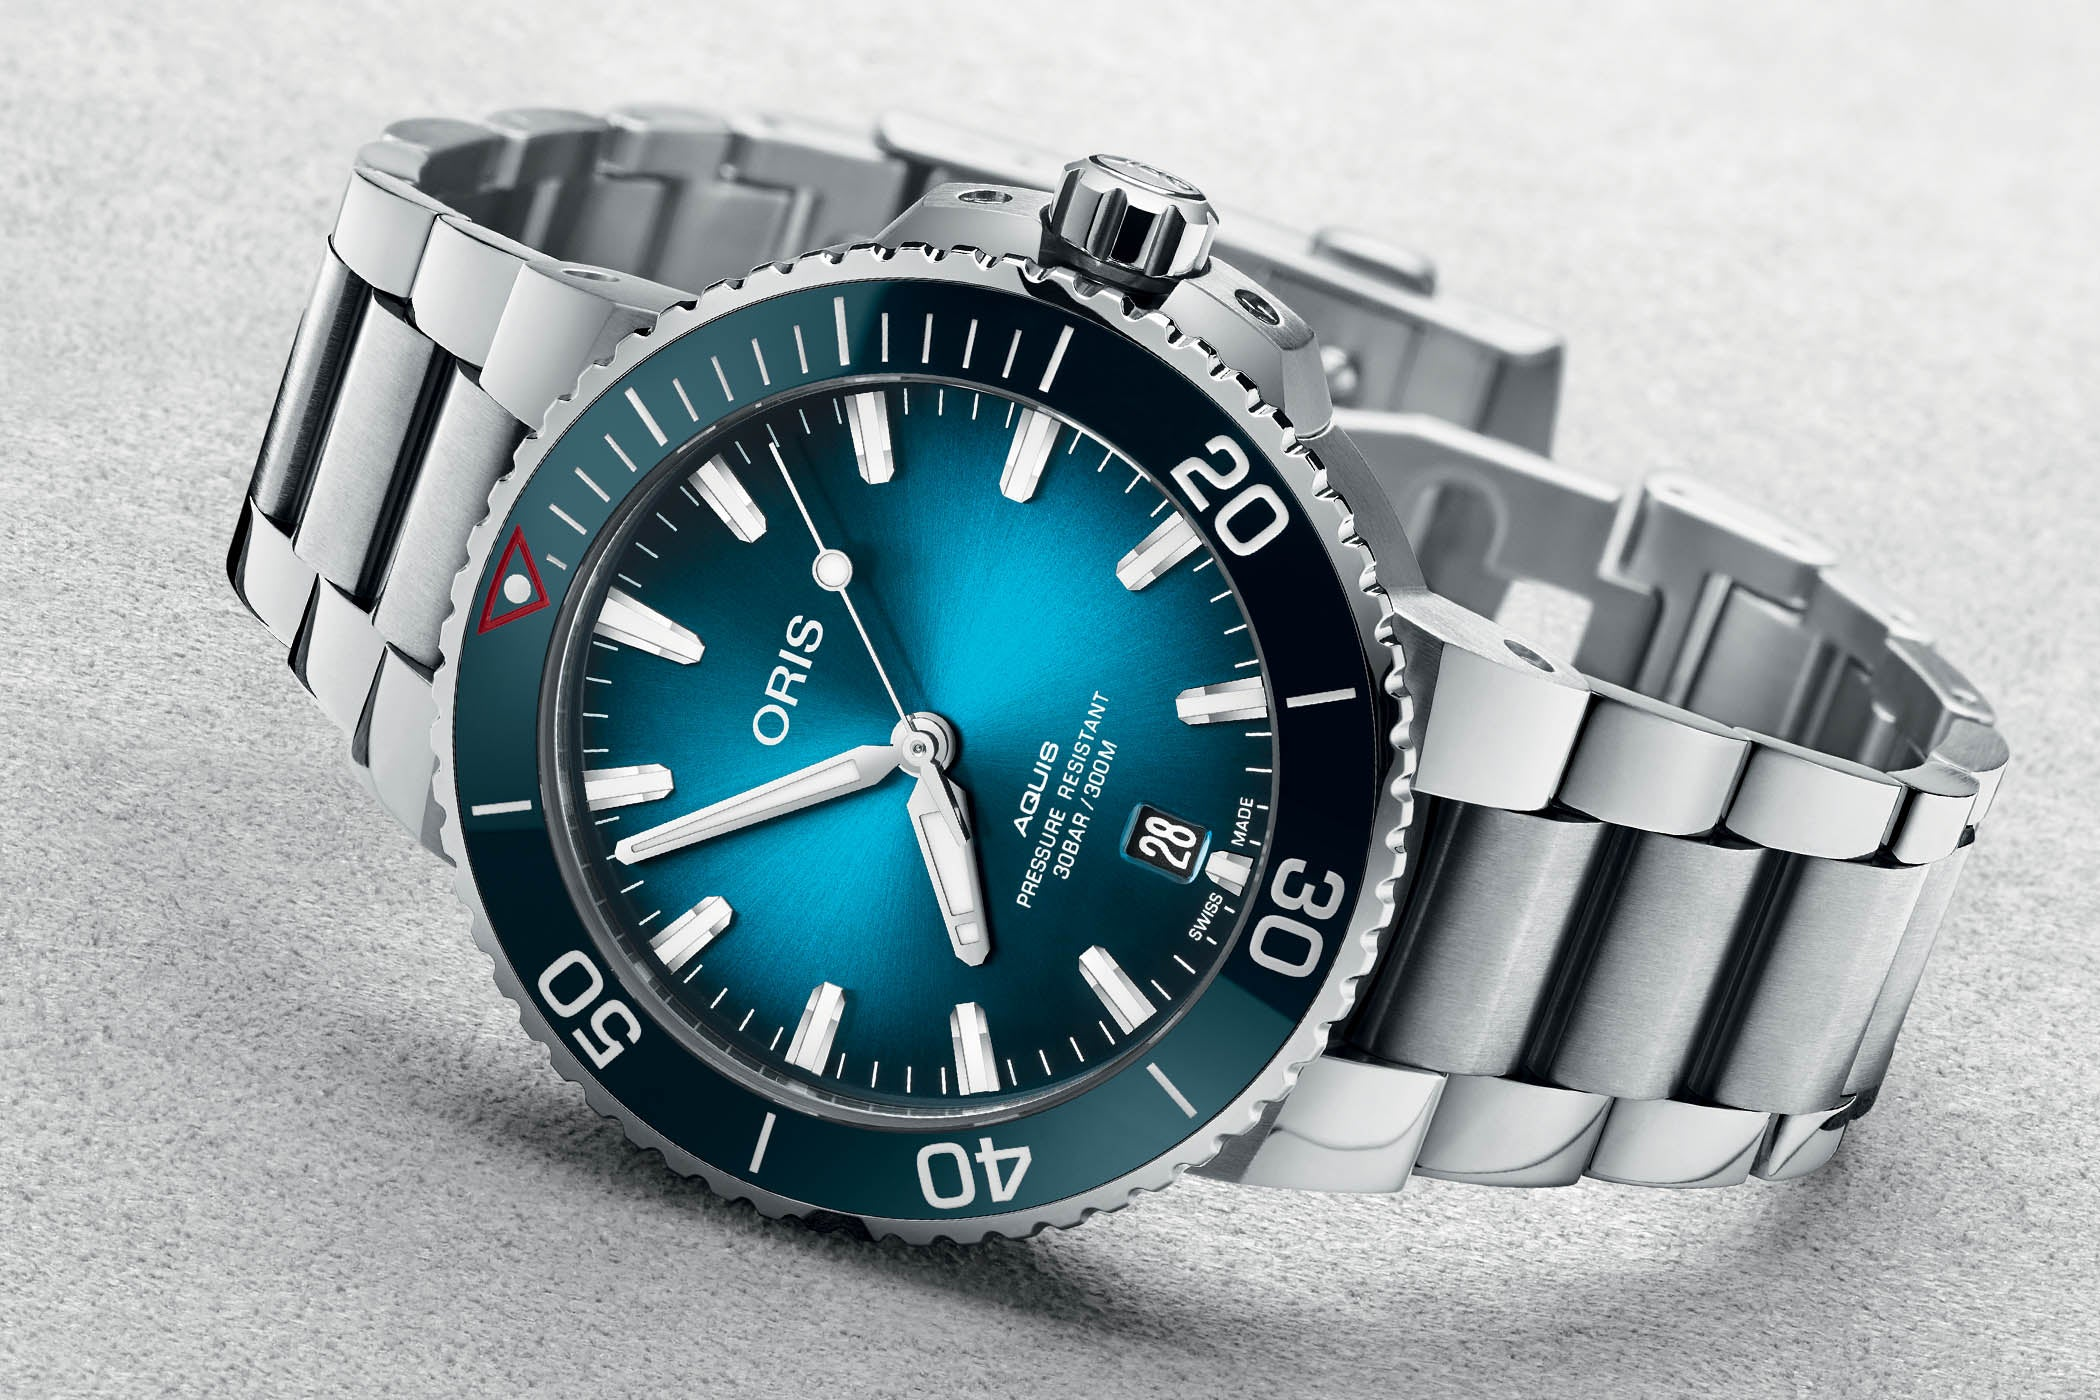 Oris Clean Ocean Limited Edition Watch